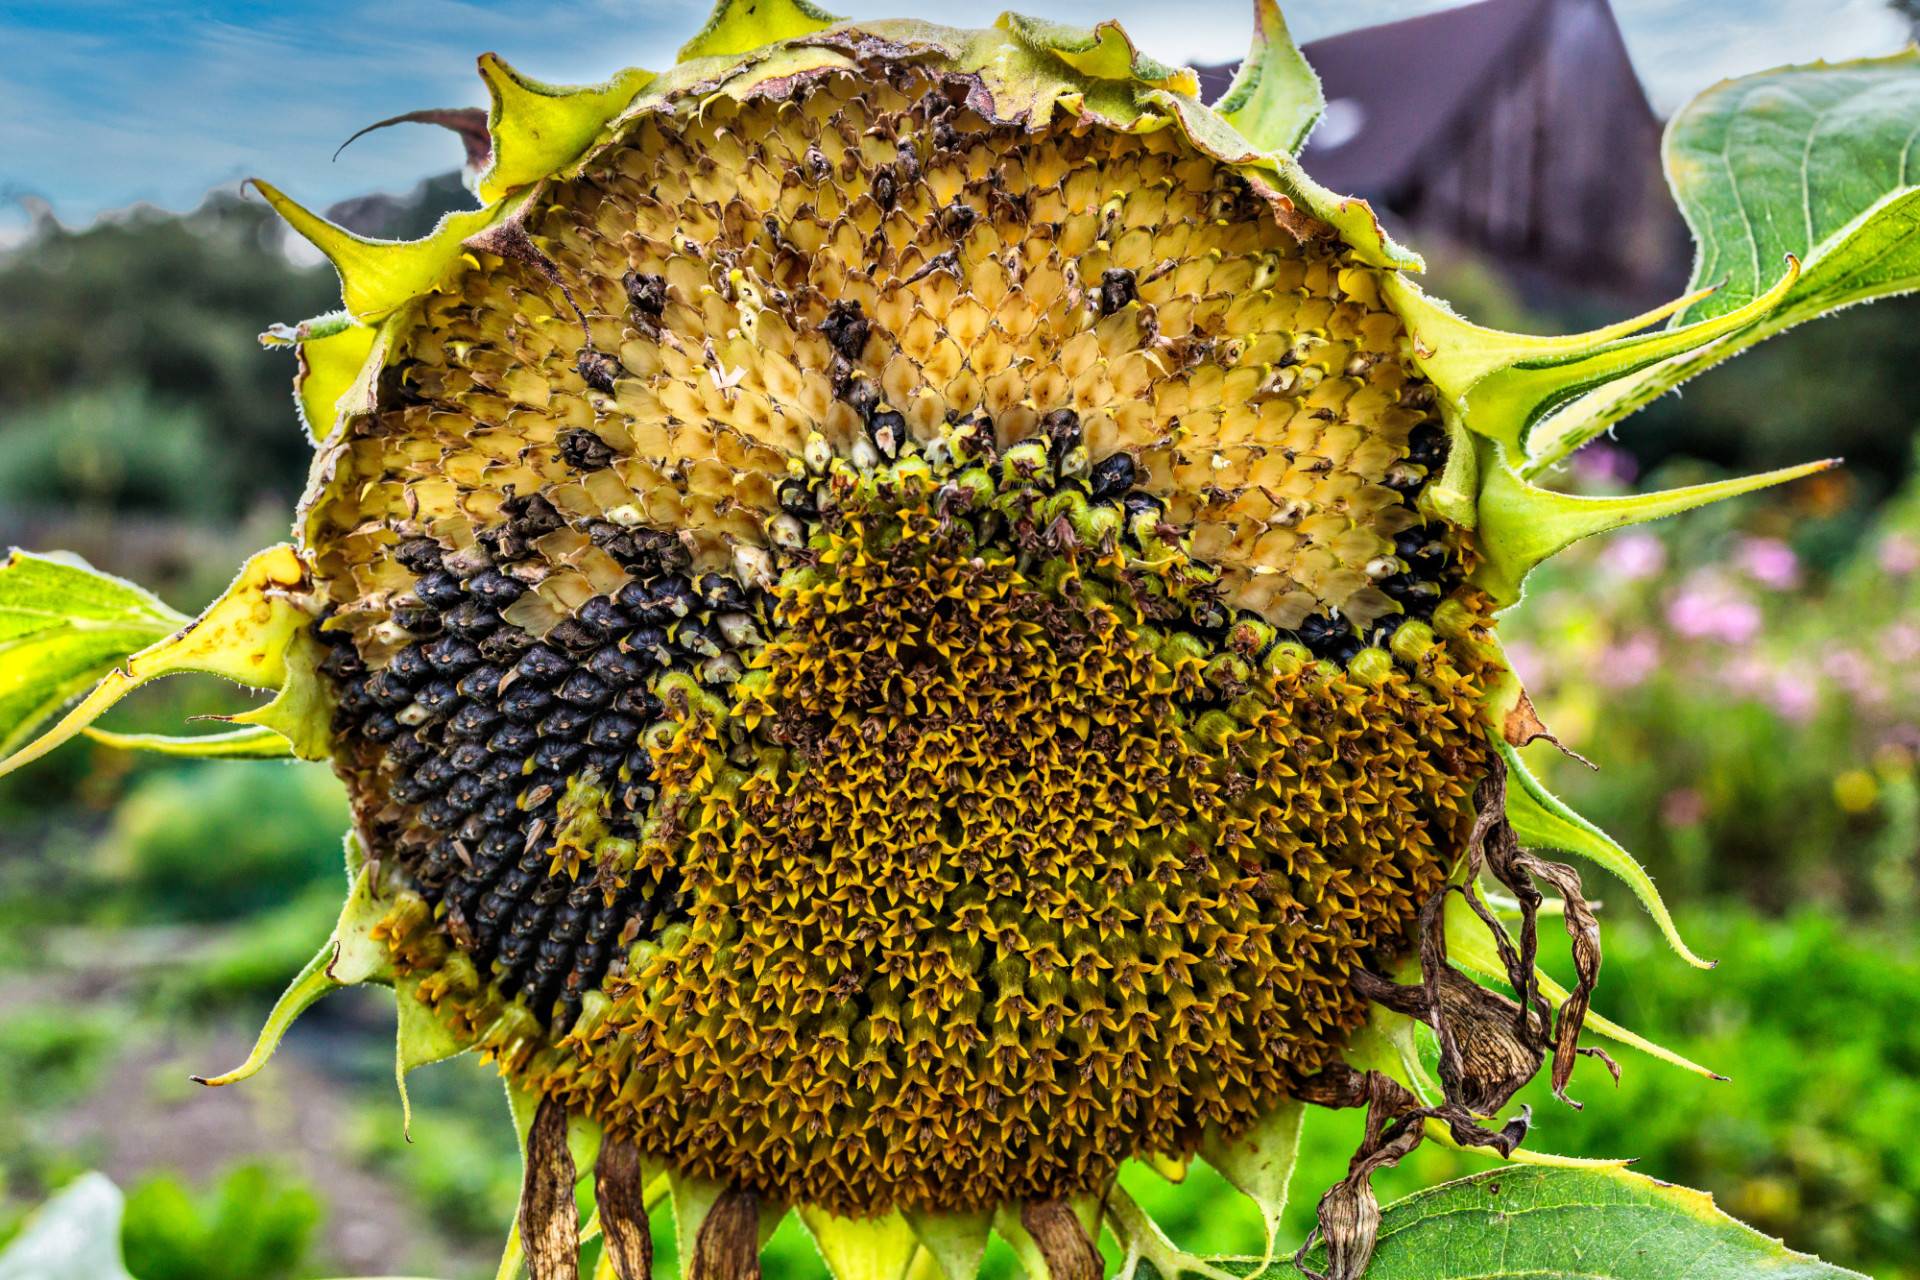 Withered sunflower with a view of the sunflower seeds